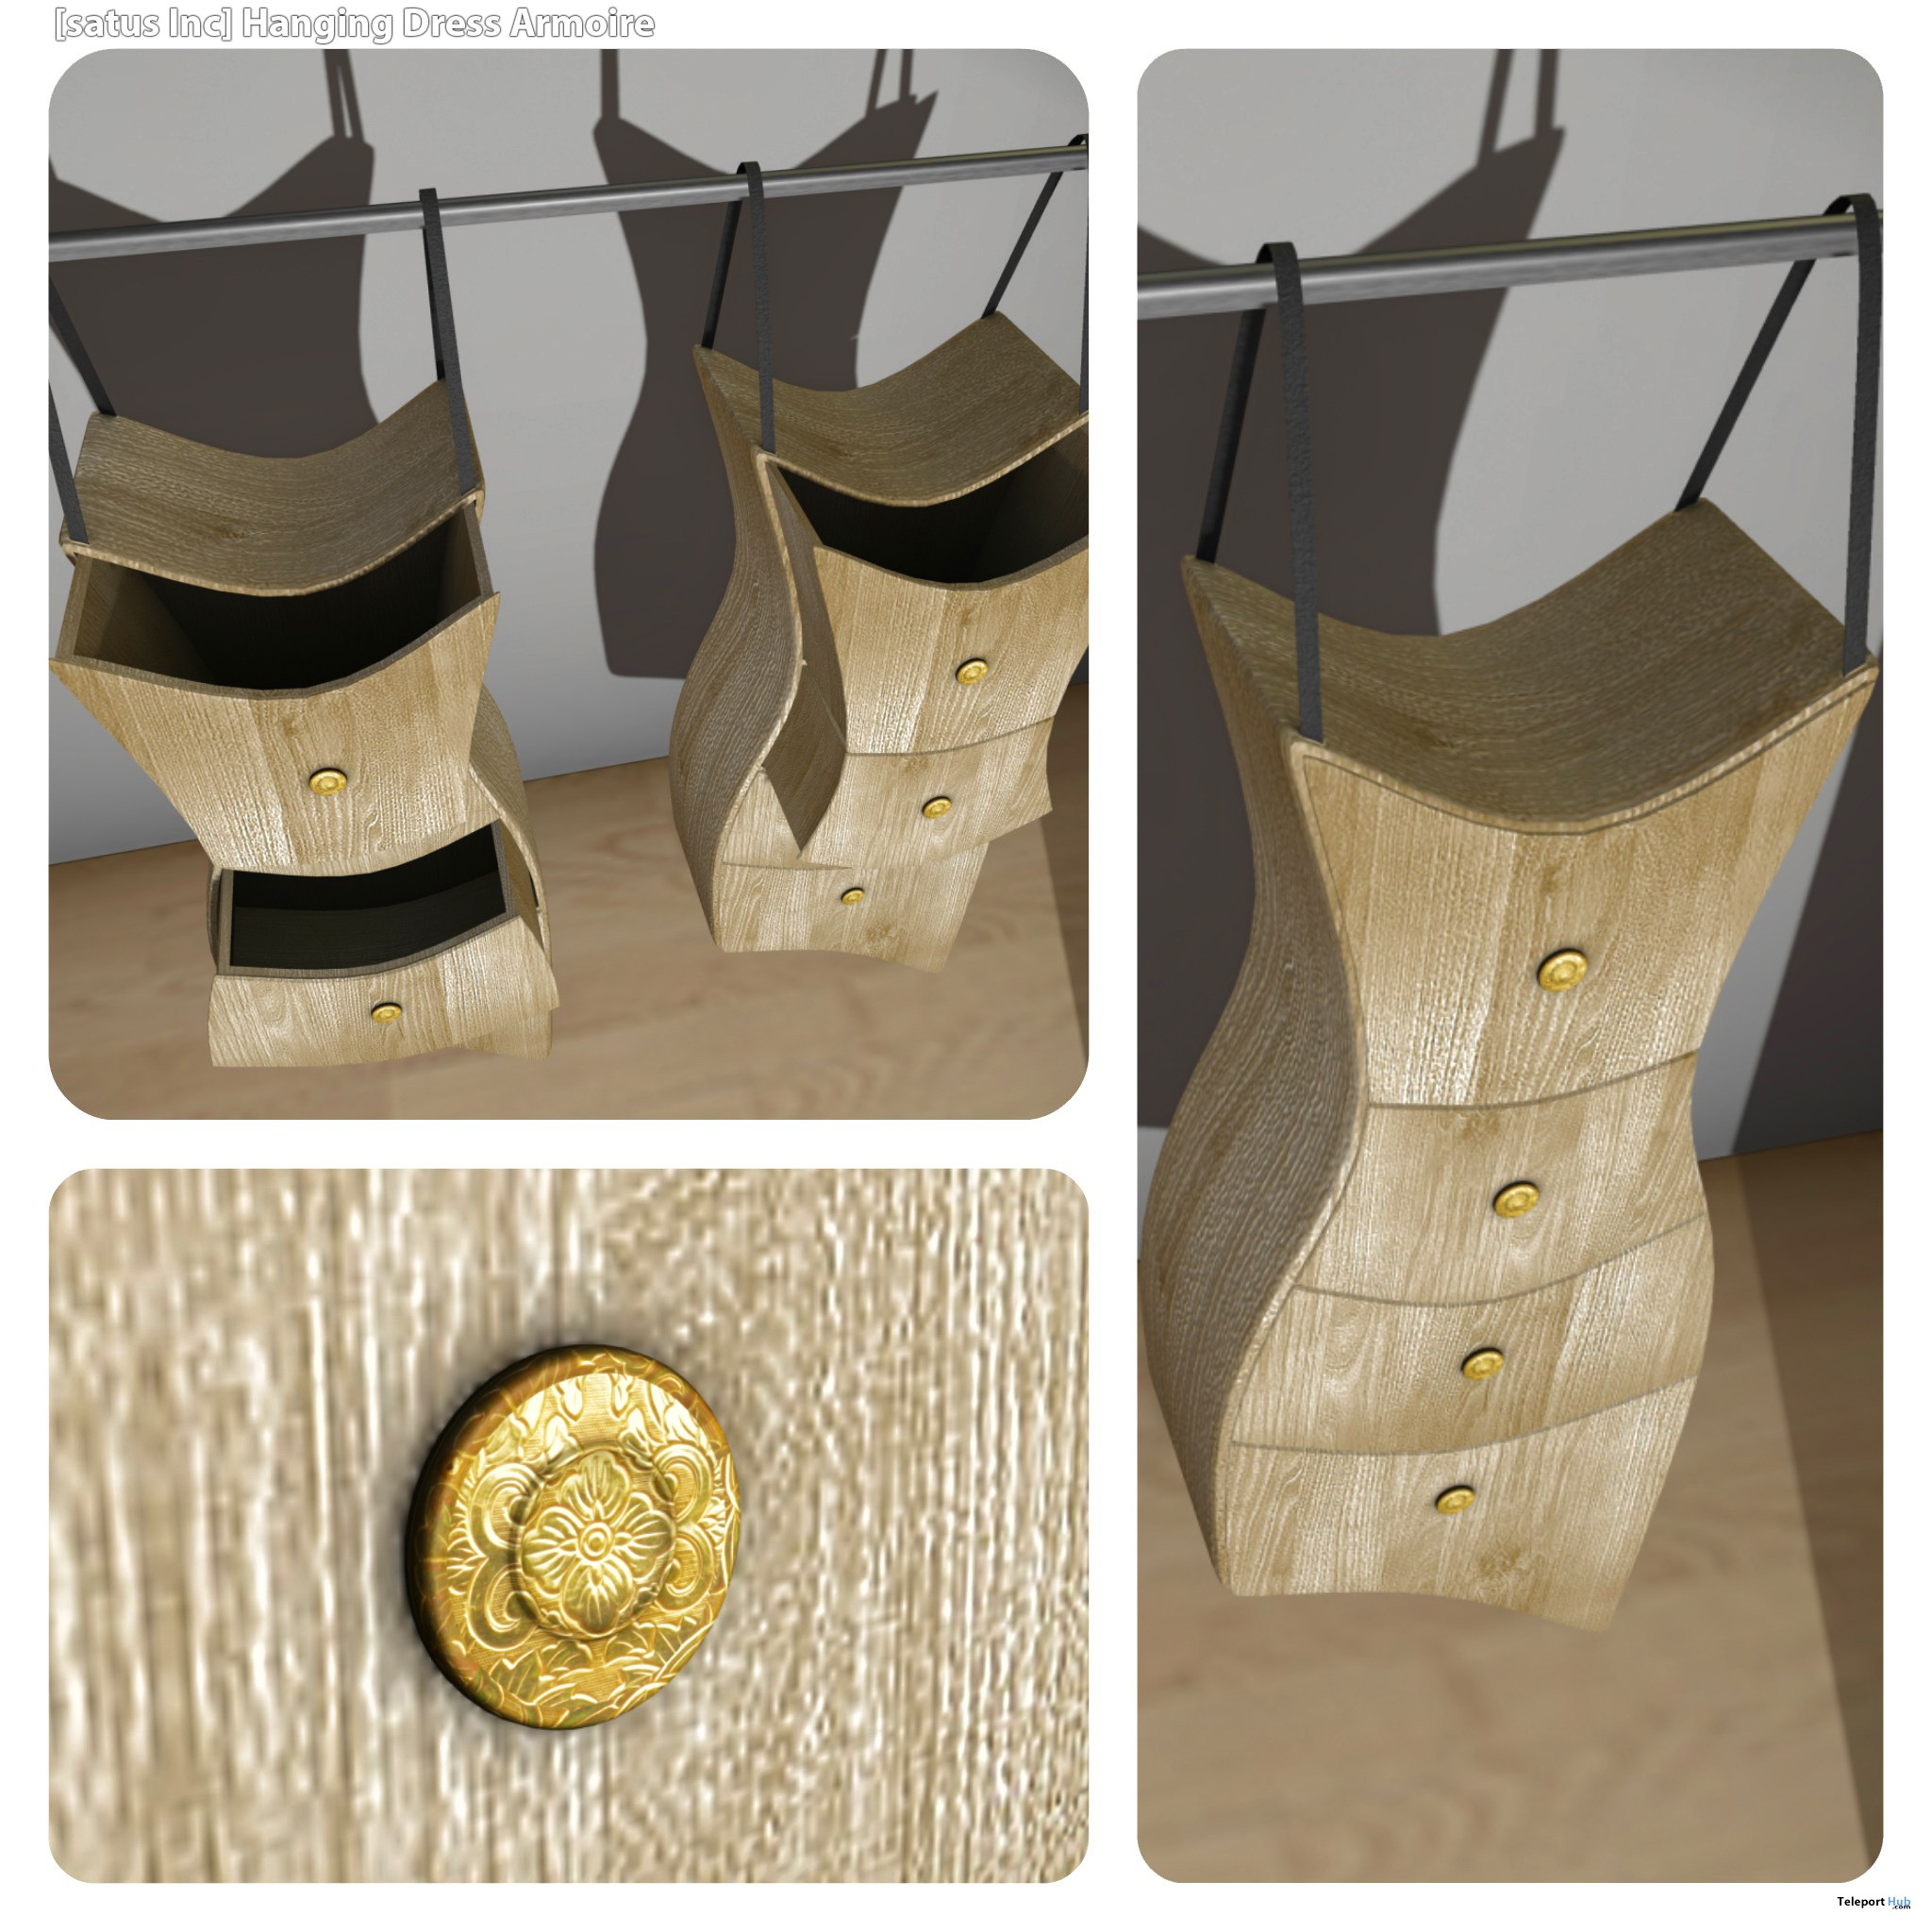 New Release: Hanging Dress Armoire by [satus Inc] - Teleport Hub - teleporthub.com